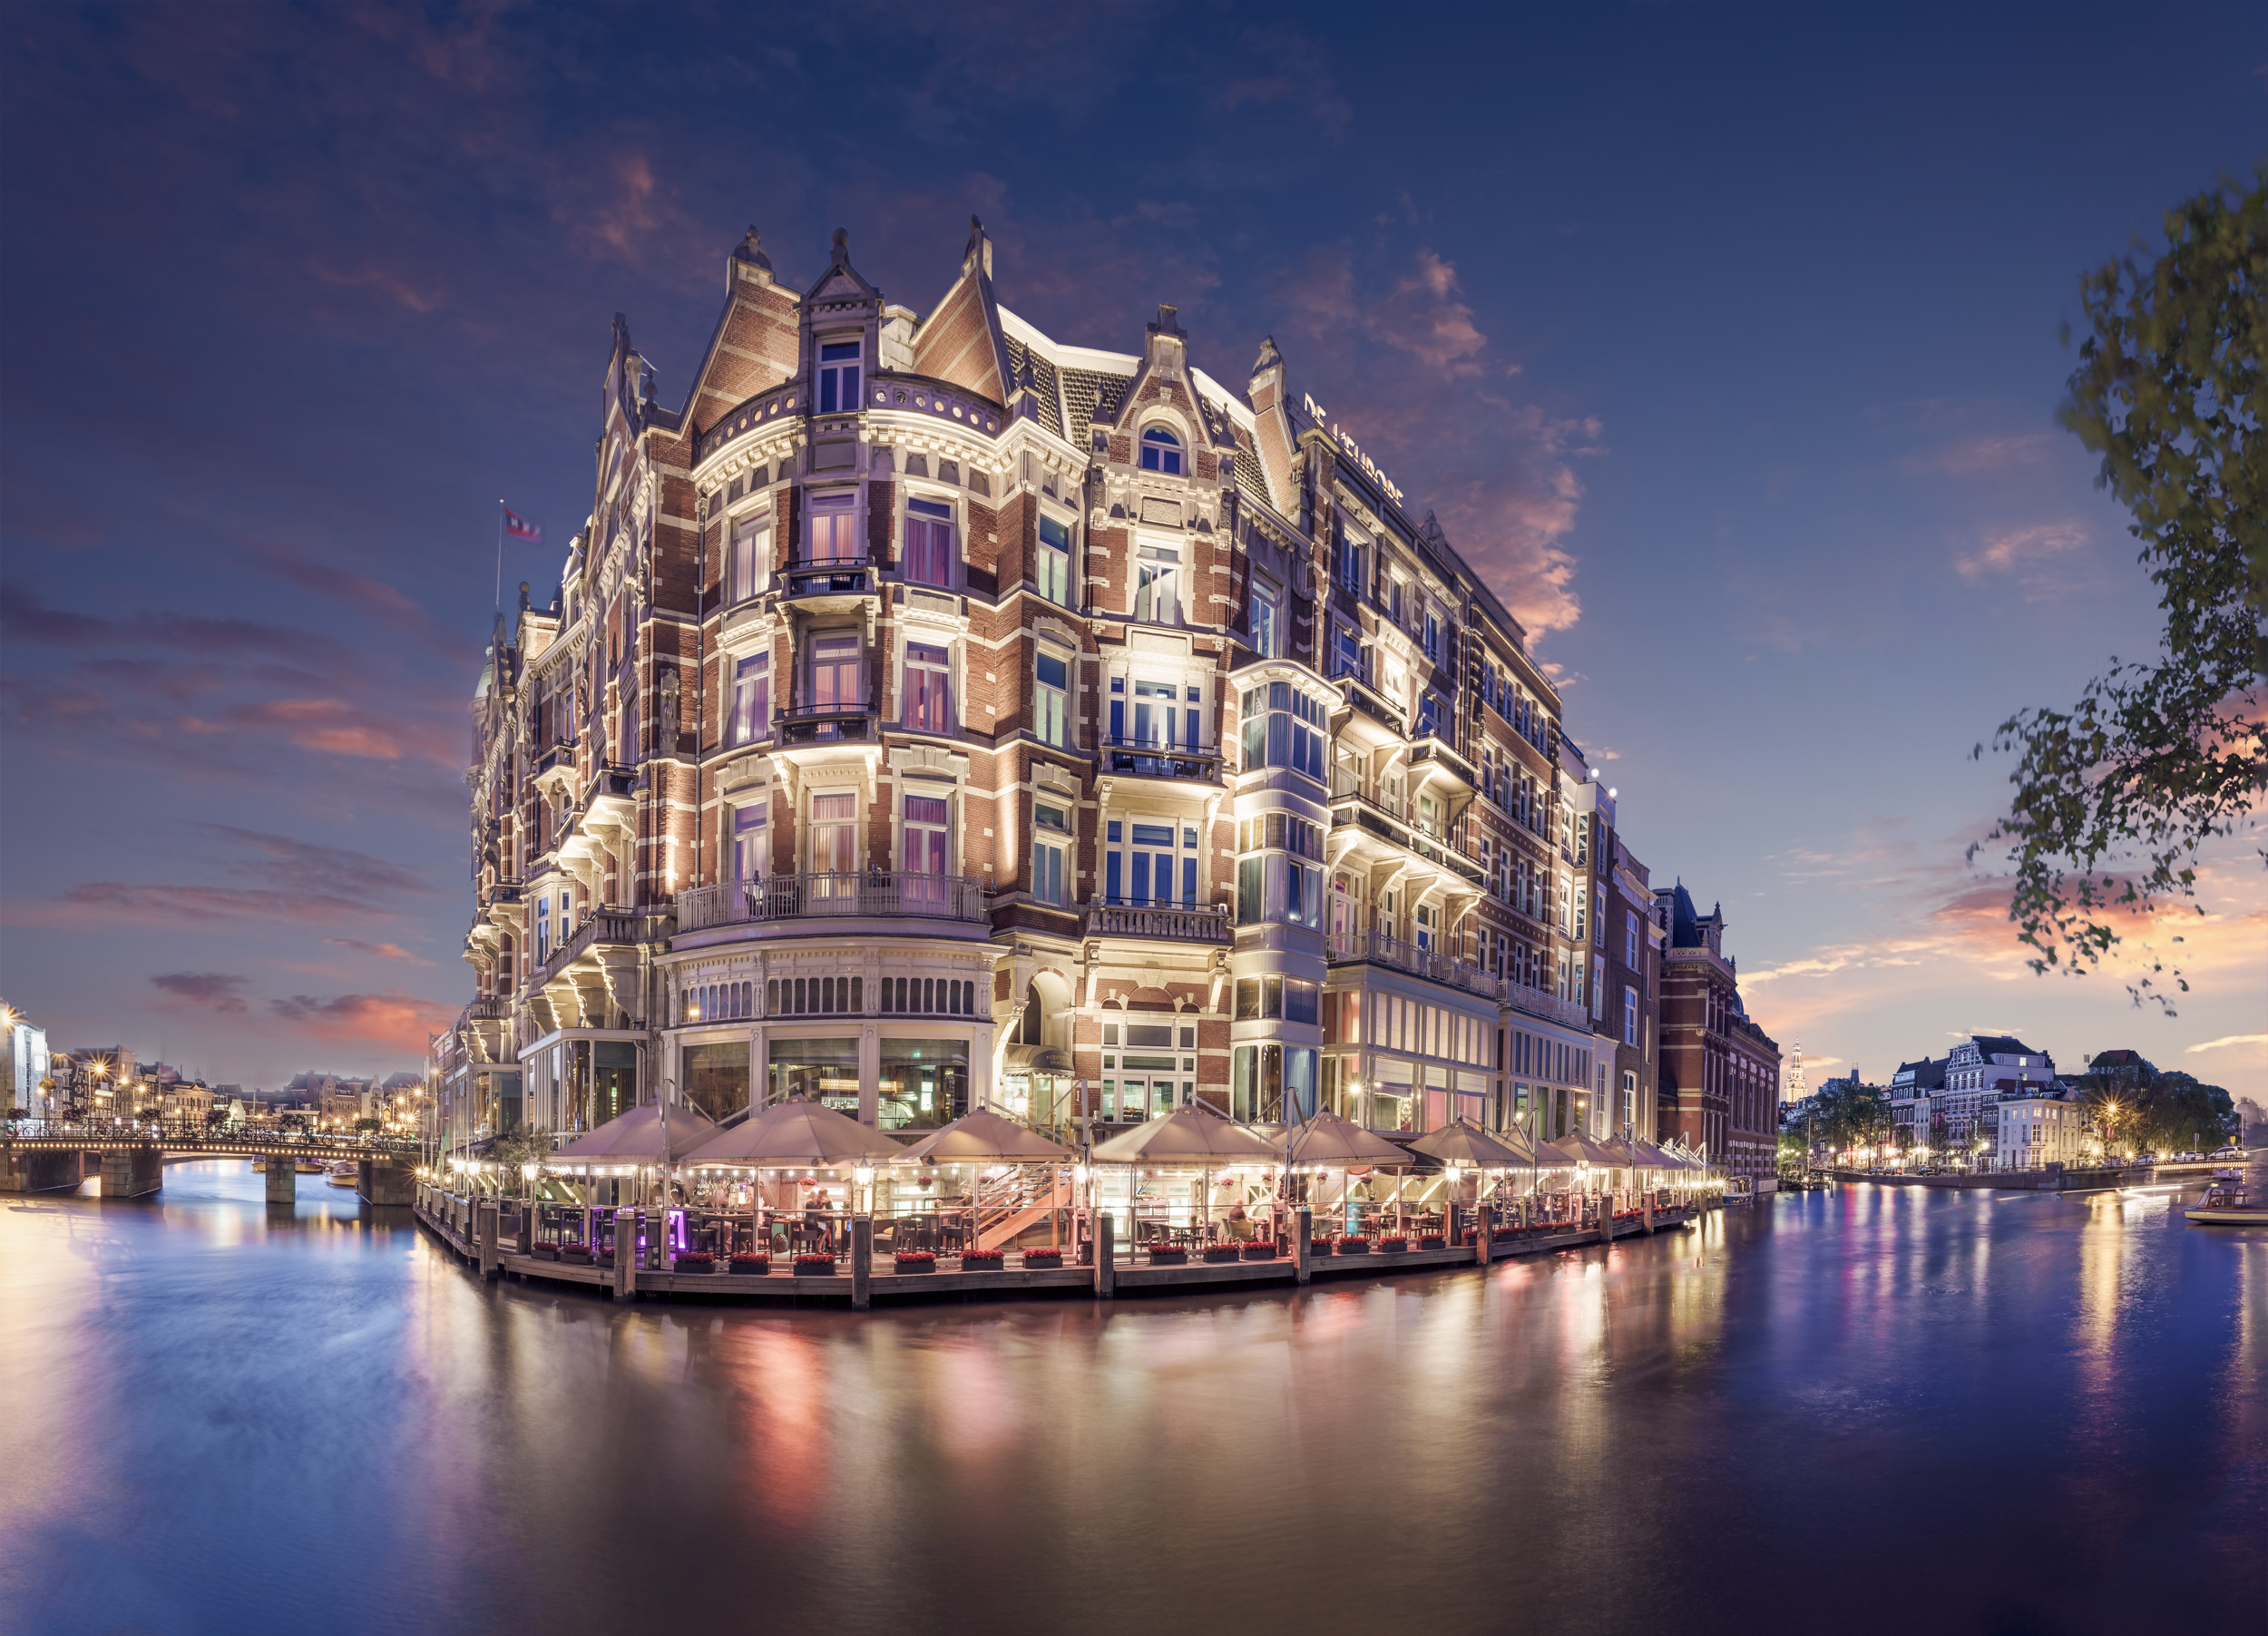 PHOTOSHOOT FOR HOTELS, AMSTERDAM